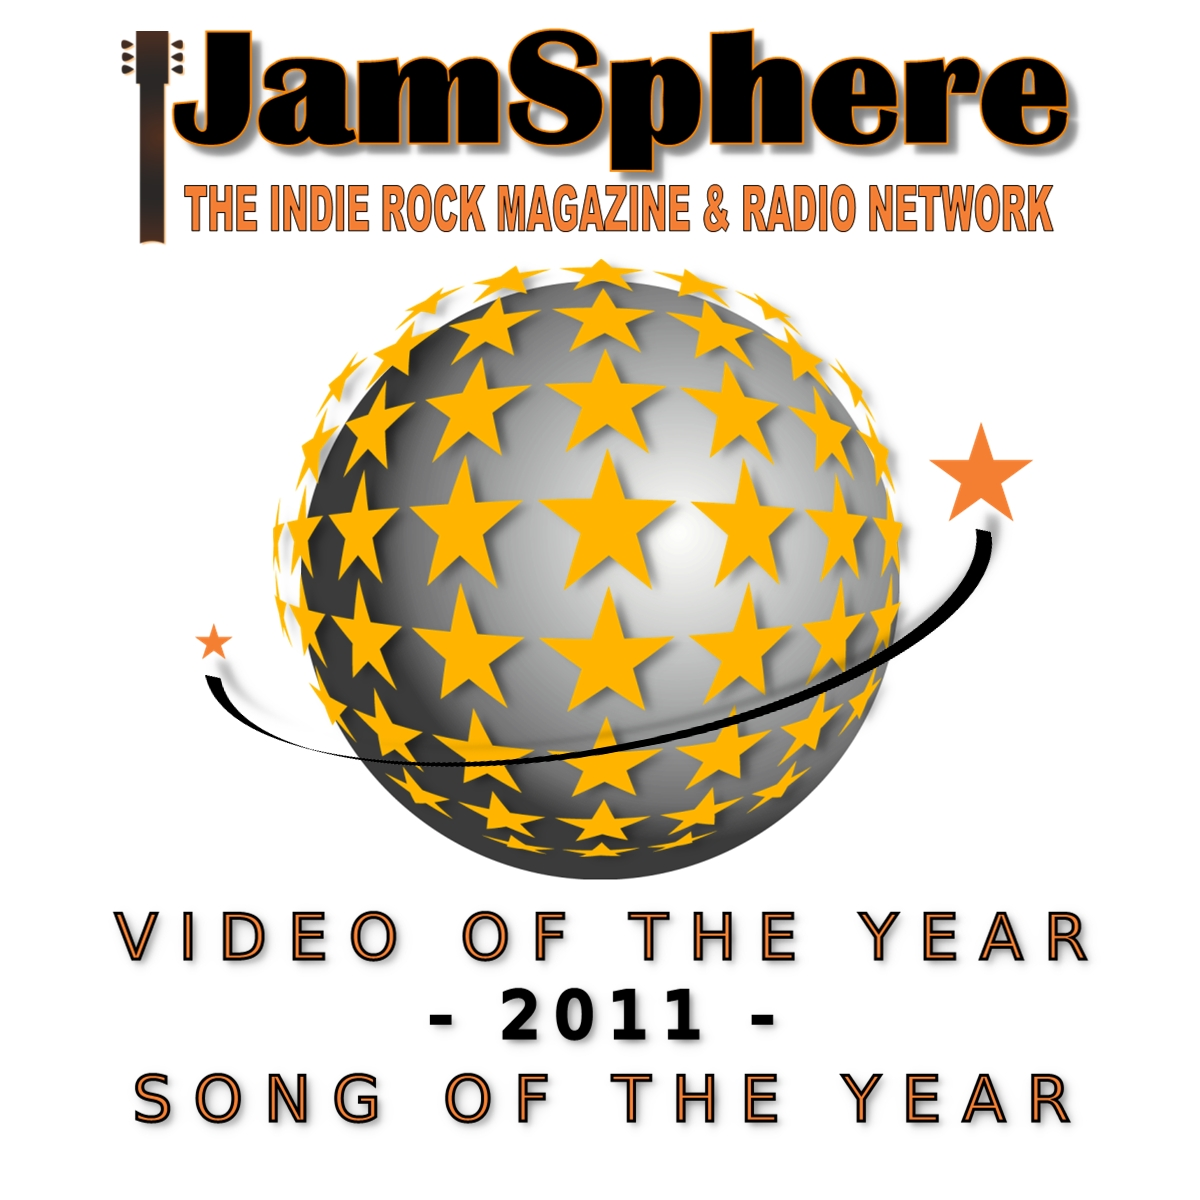 JAMSPHERE 2011 MUSIC AWARDS: THE 6 FINALISTS!